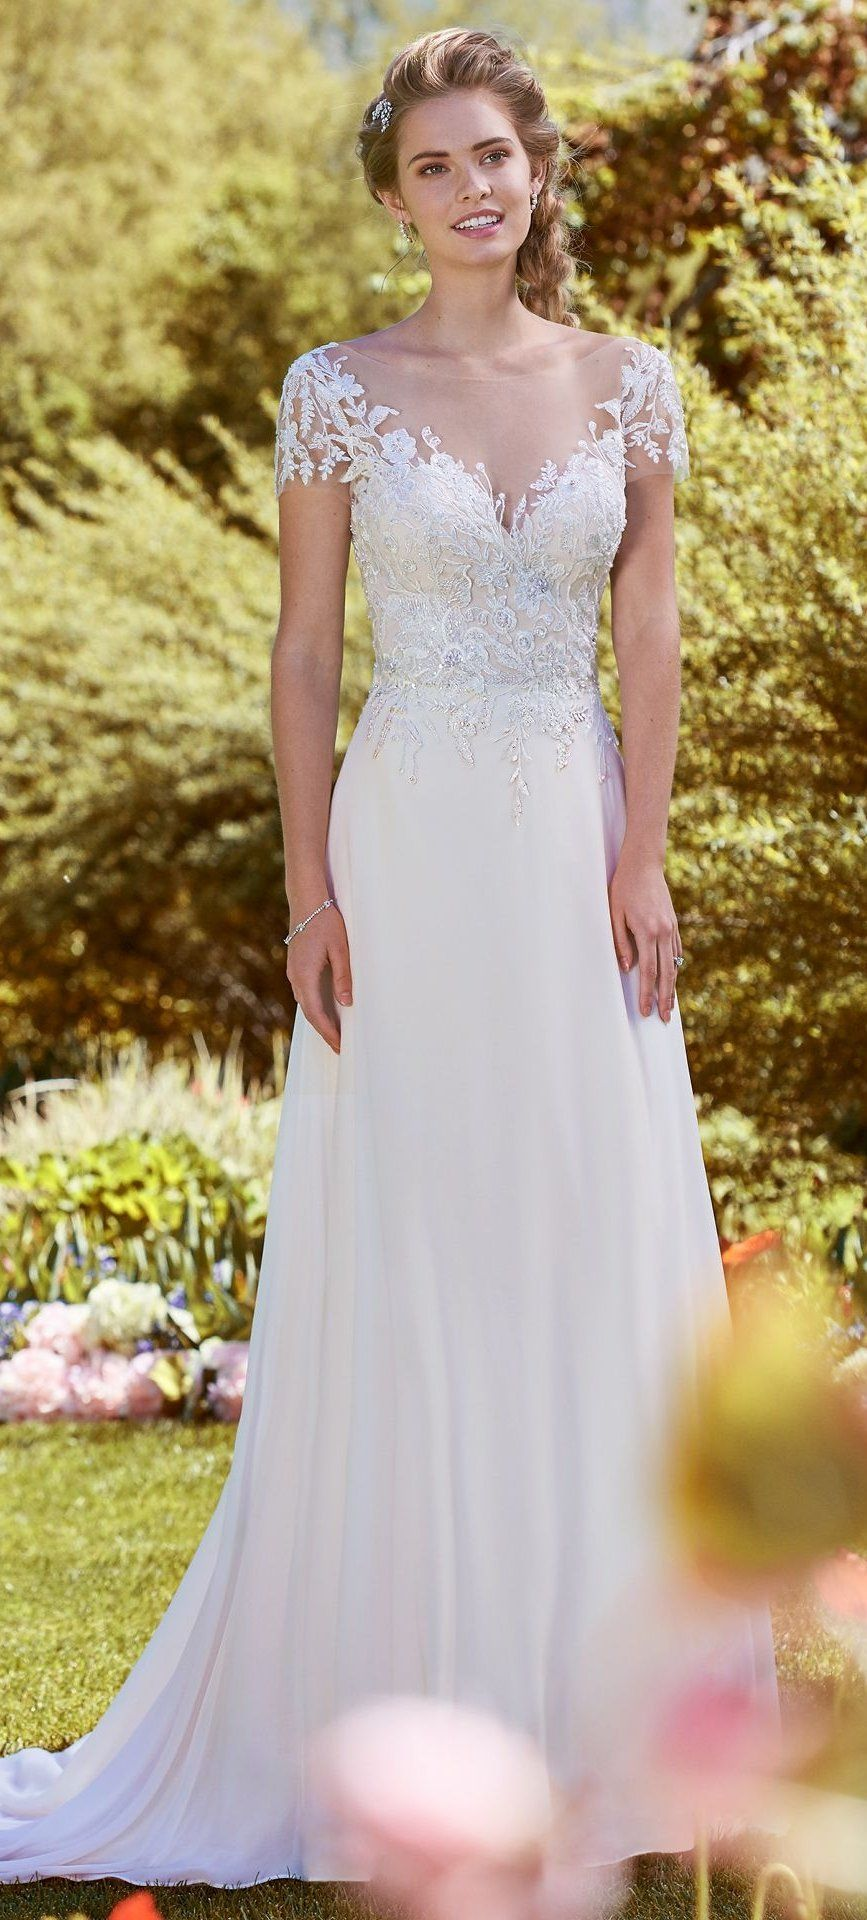 4b6af8054dc Lightweight wedding dress Mercy by Rebecca Ingram featuring beaded lace  motifs and chiffon skirt. Swarovski crystals adorn the bodice of this  romantic ...